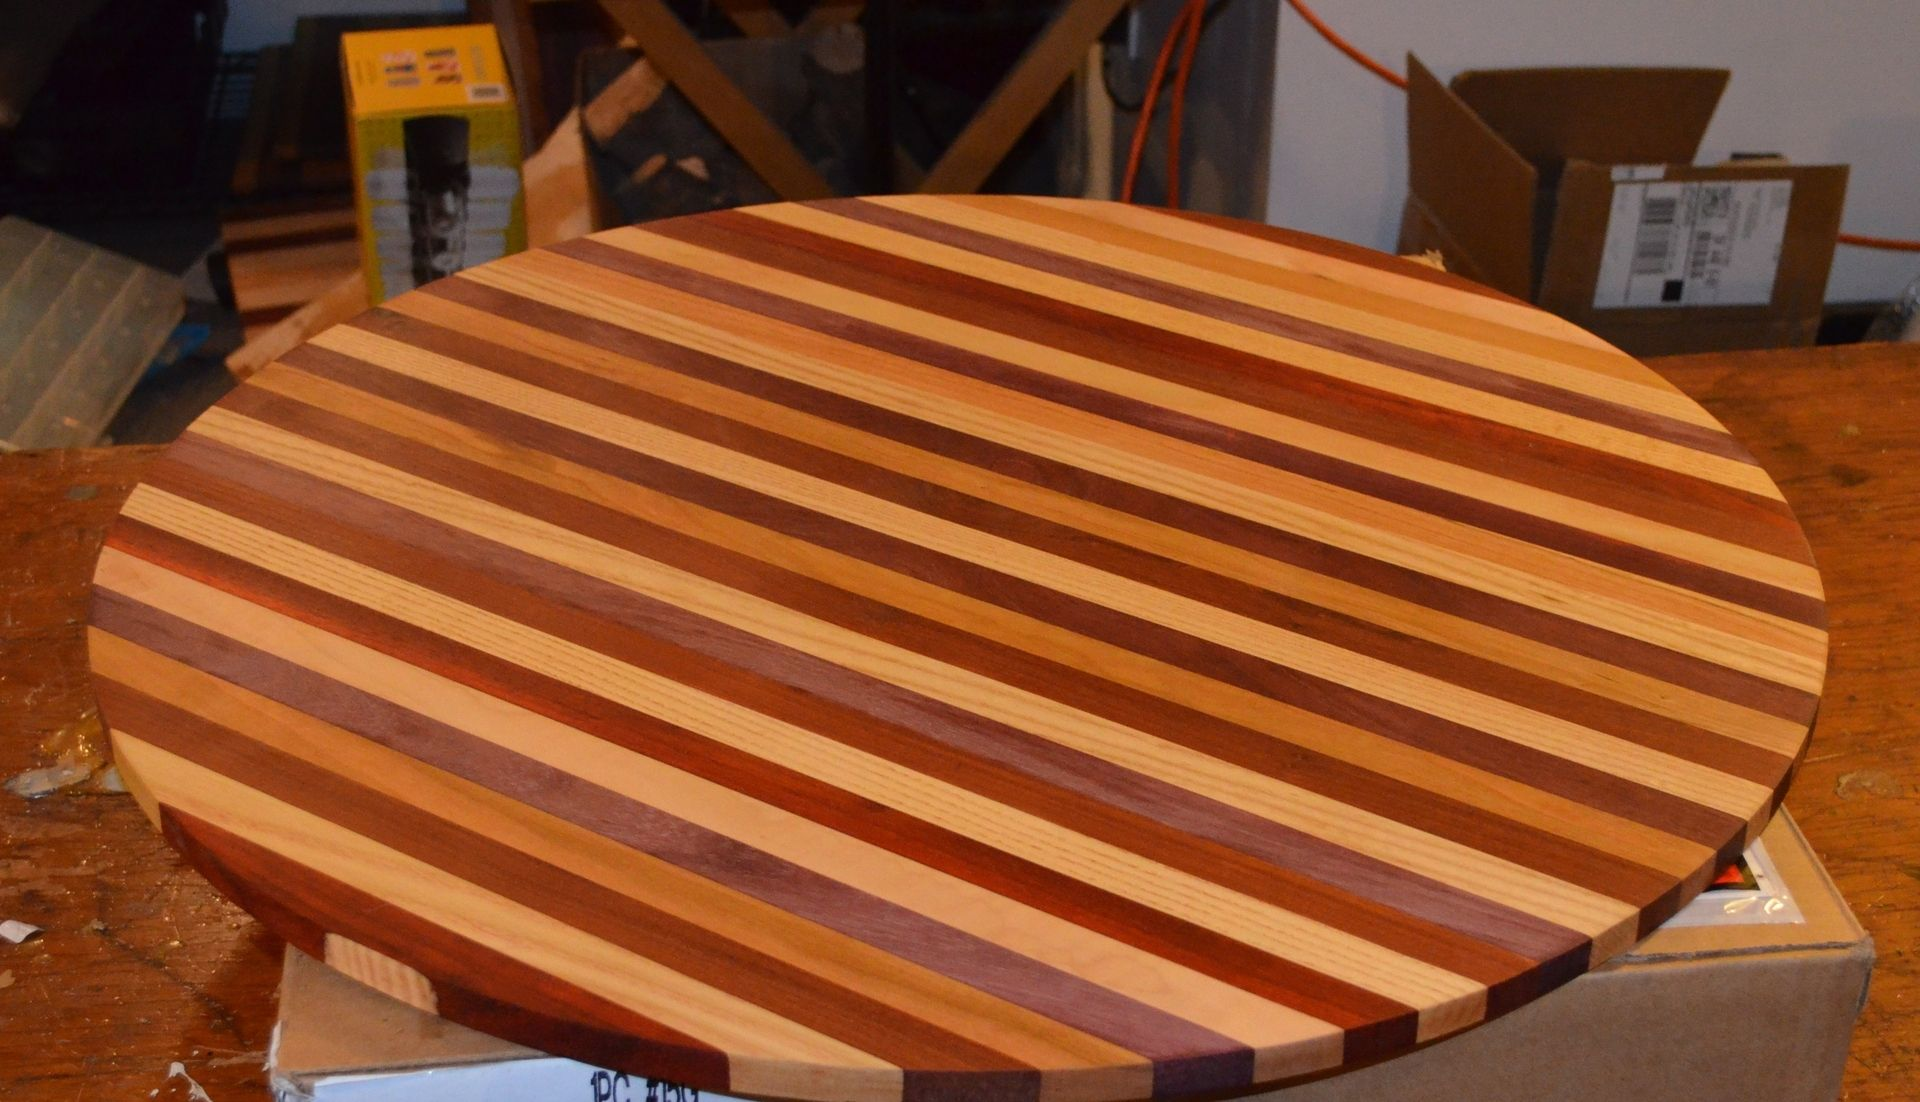 Boos Countertop Hand Crafted Butcher Block Table Top For Wine Barrel By